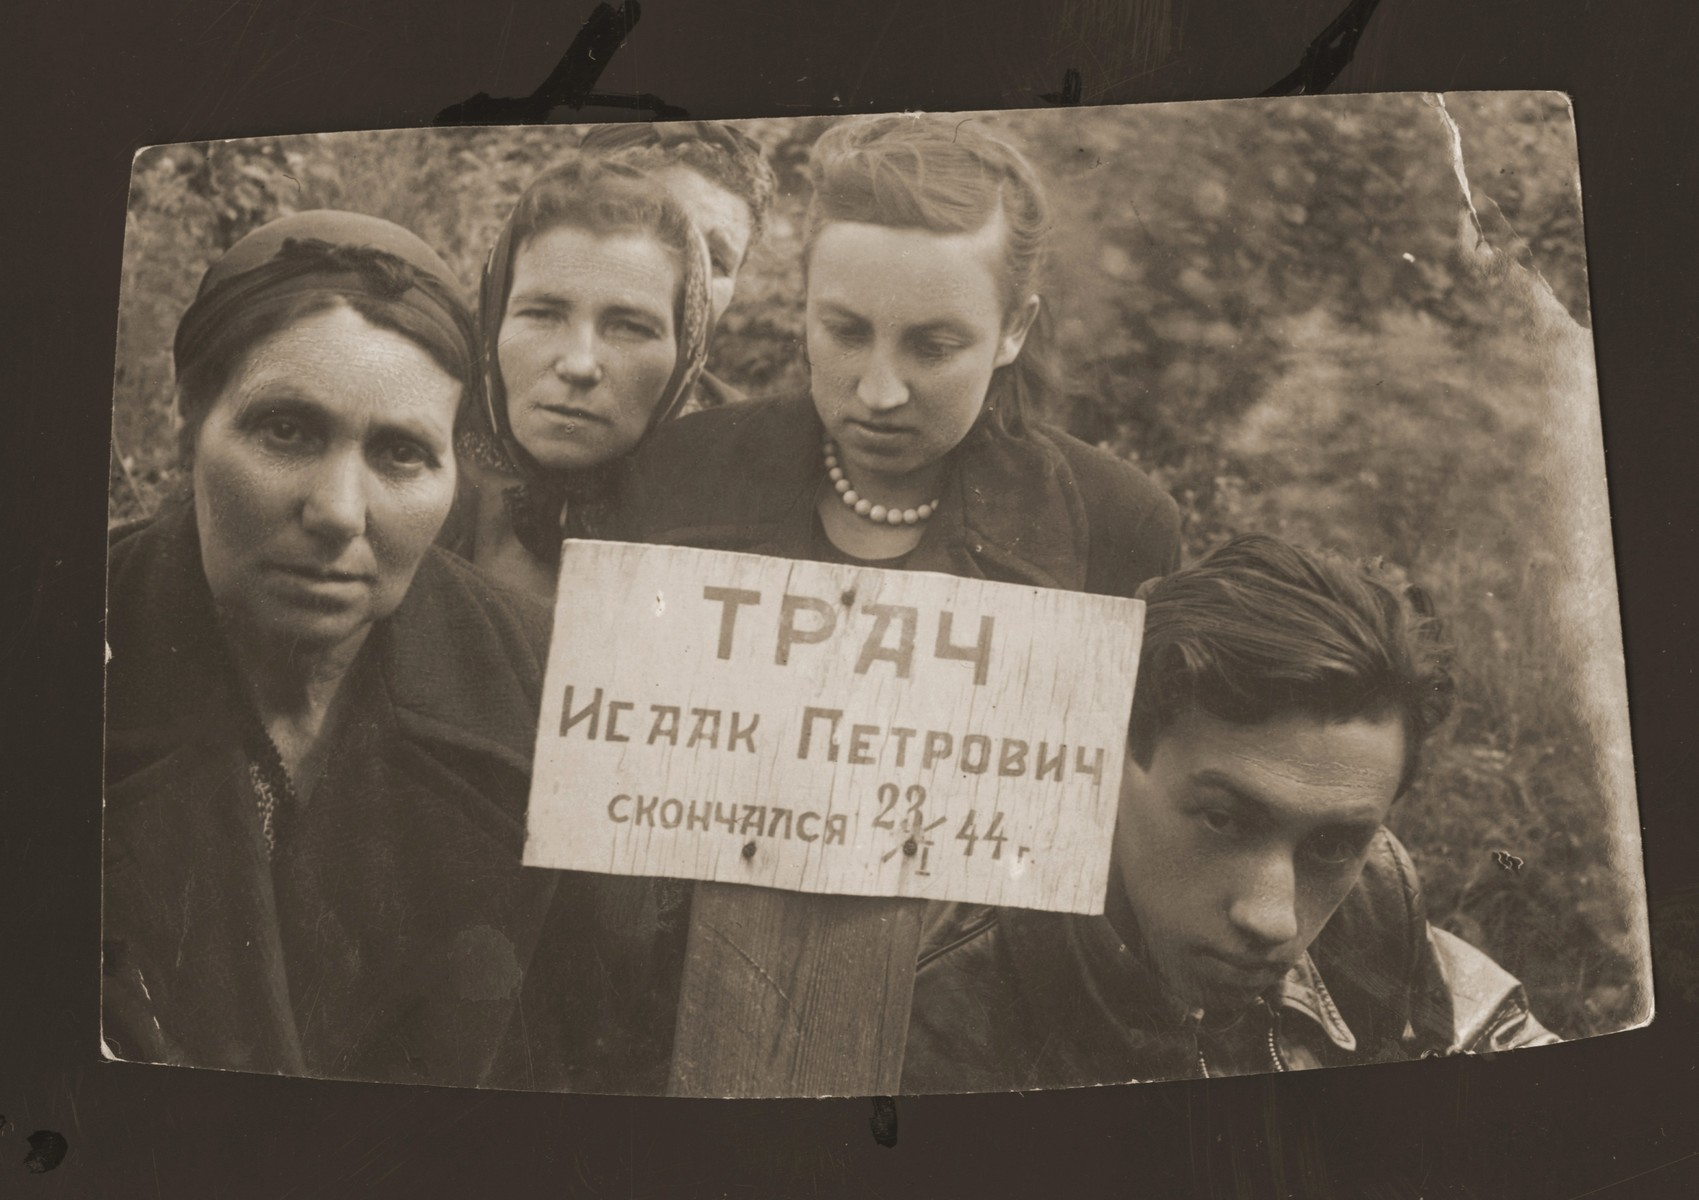 Members of the Tracz family pose at the grave of Izak Tracz, who died on January 23, 1944 in Gorky.    Estera (Ajzen) Lewin took this photograph on the eve of the family's return to Poland.